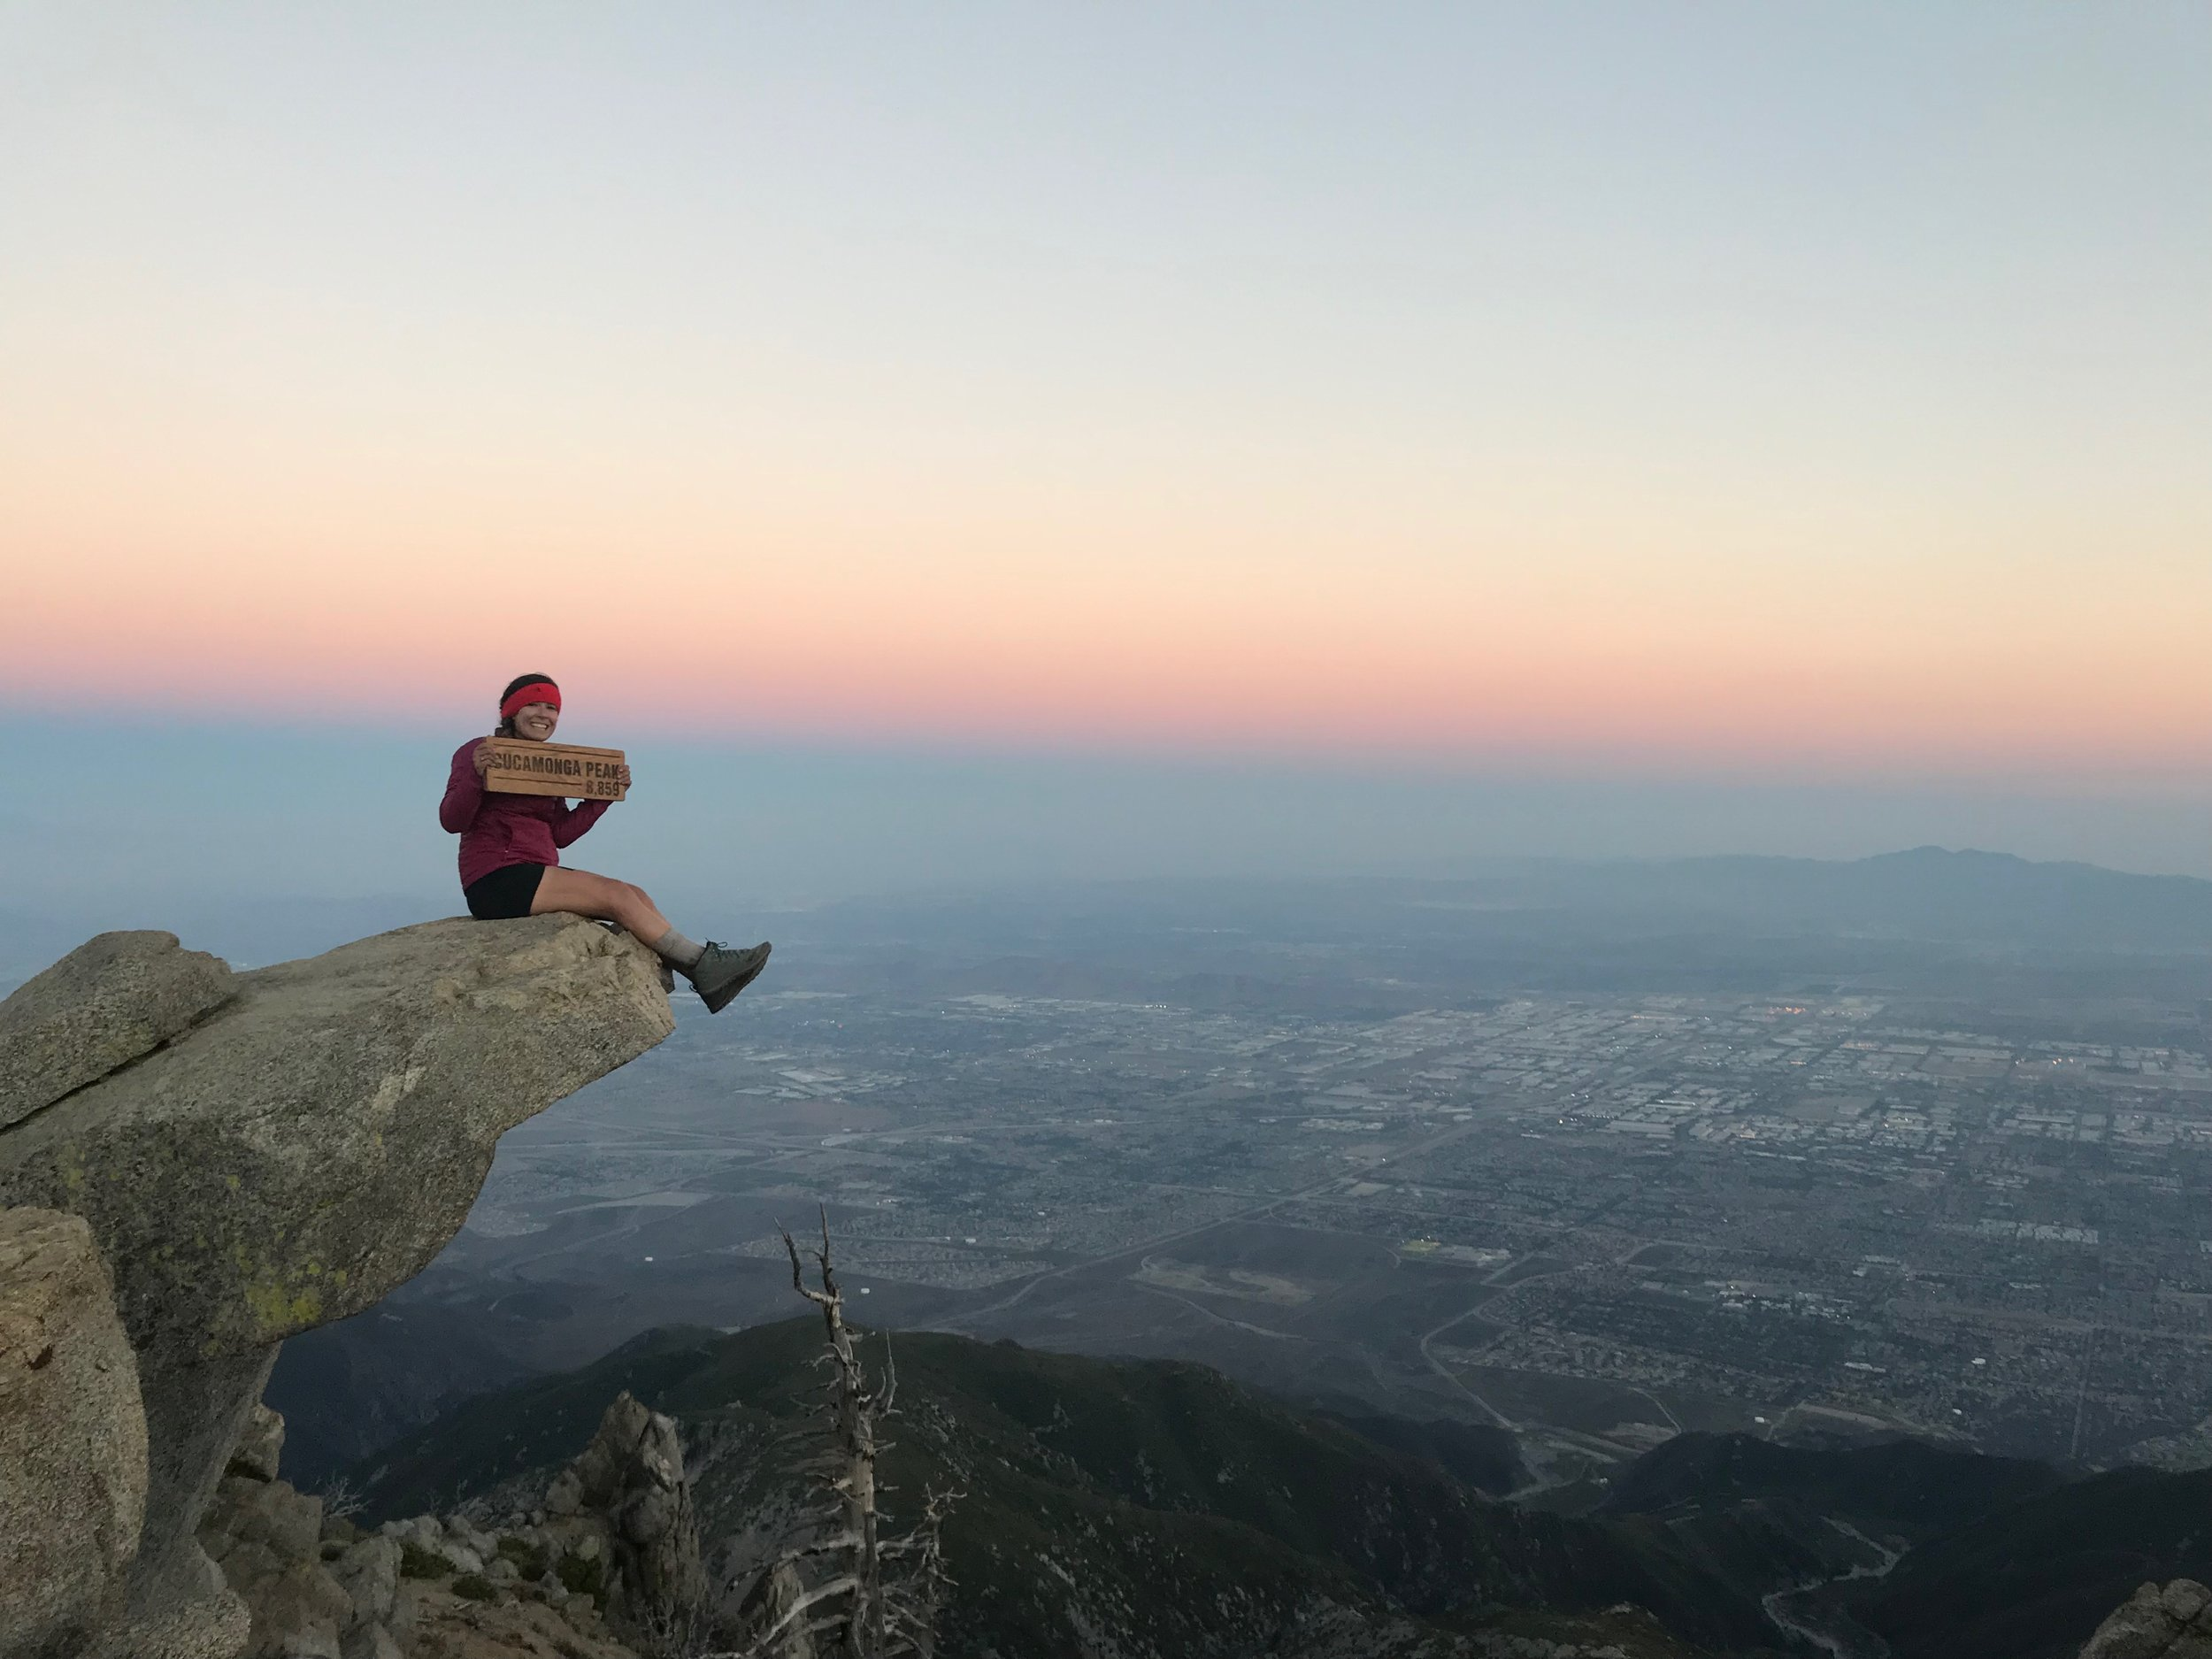 Sitting on top of the world watching the sunset.